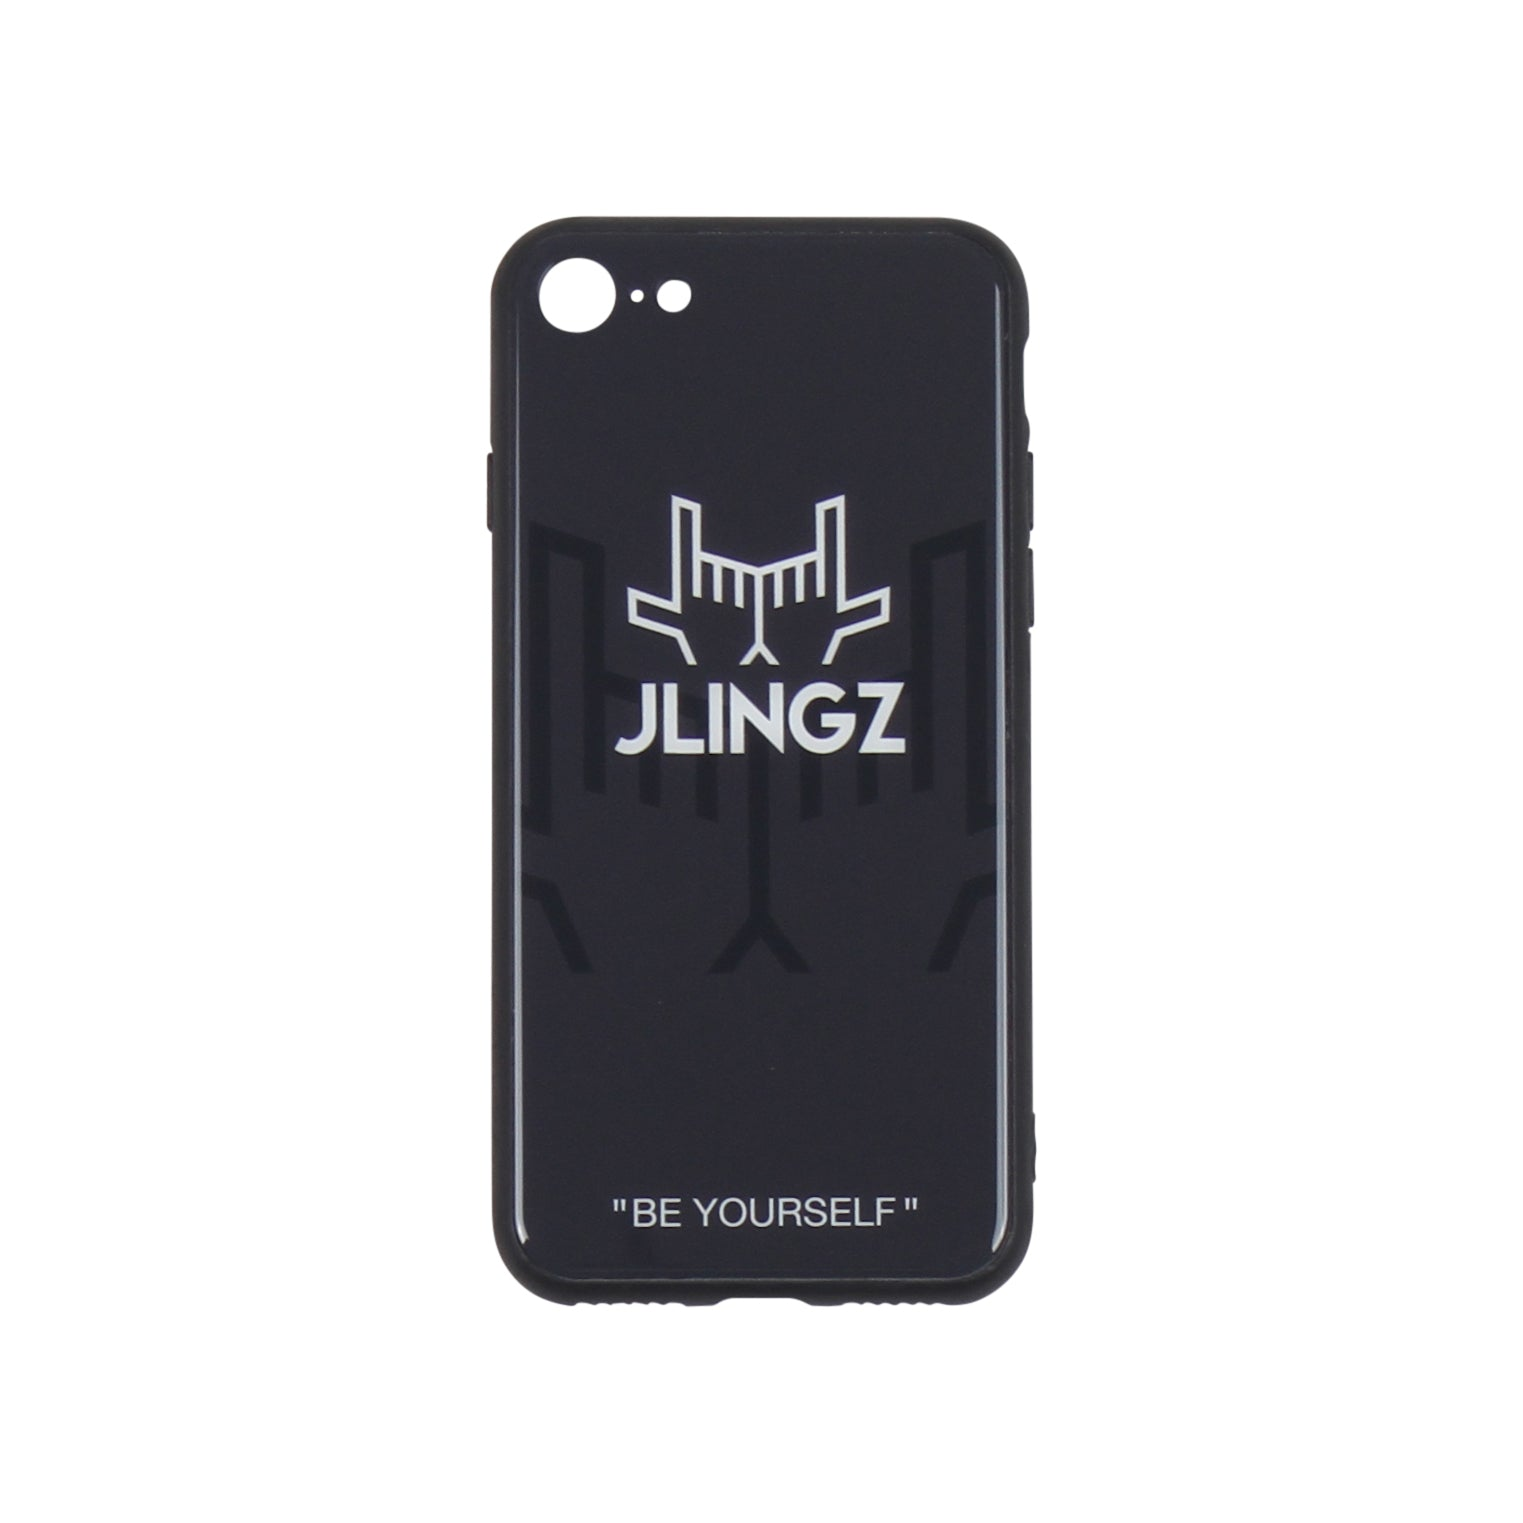 jlingz iphone